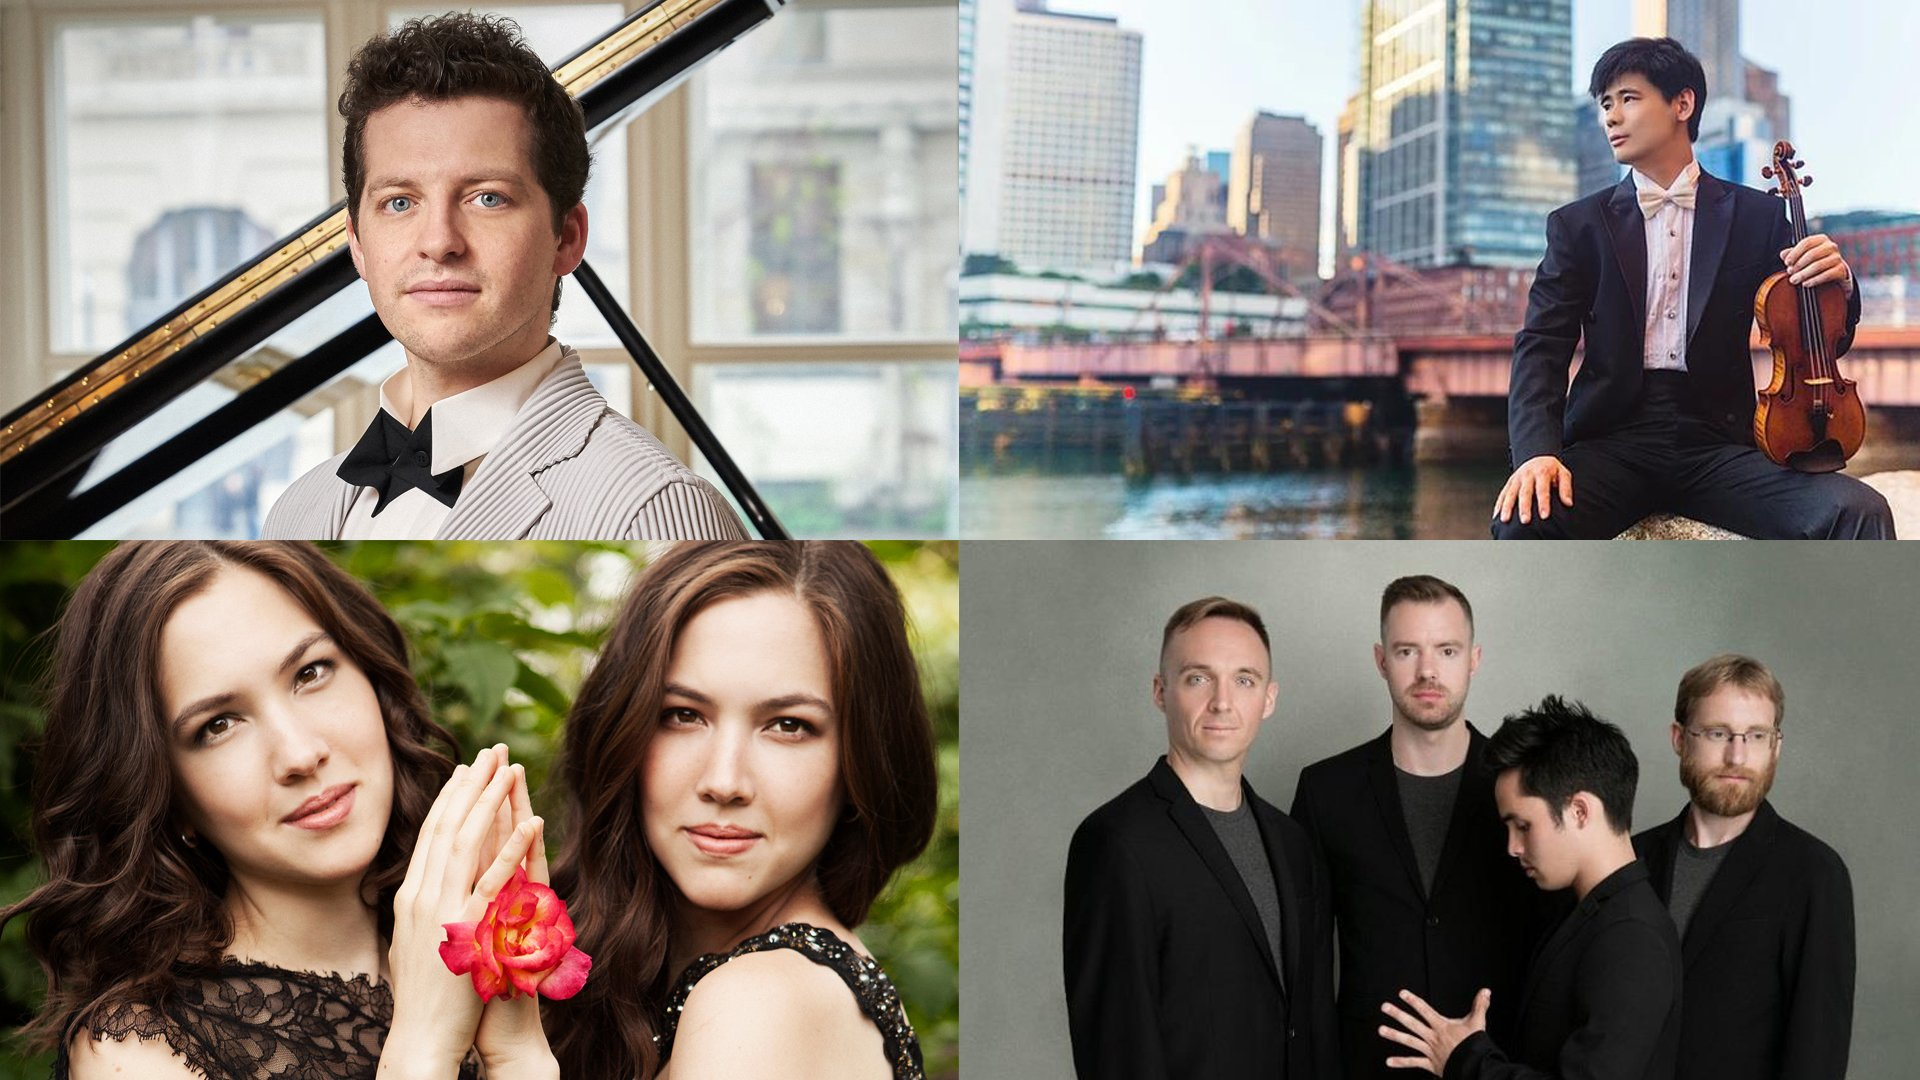 Congrats to 2019 Avery Fisher Career Grant winners @HenryThePianist, Angelo Xiang Yu, @NaughtonPiano & @jackquartet! Tune in to the ceremony tonight at 6pm live from @TheGreeneSpace, hosted by @WQXR's @ElliottForrest & ft. performances by the honorees! >> bit.ly/2Kakwhp